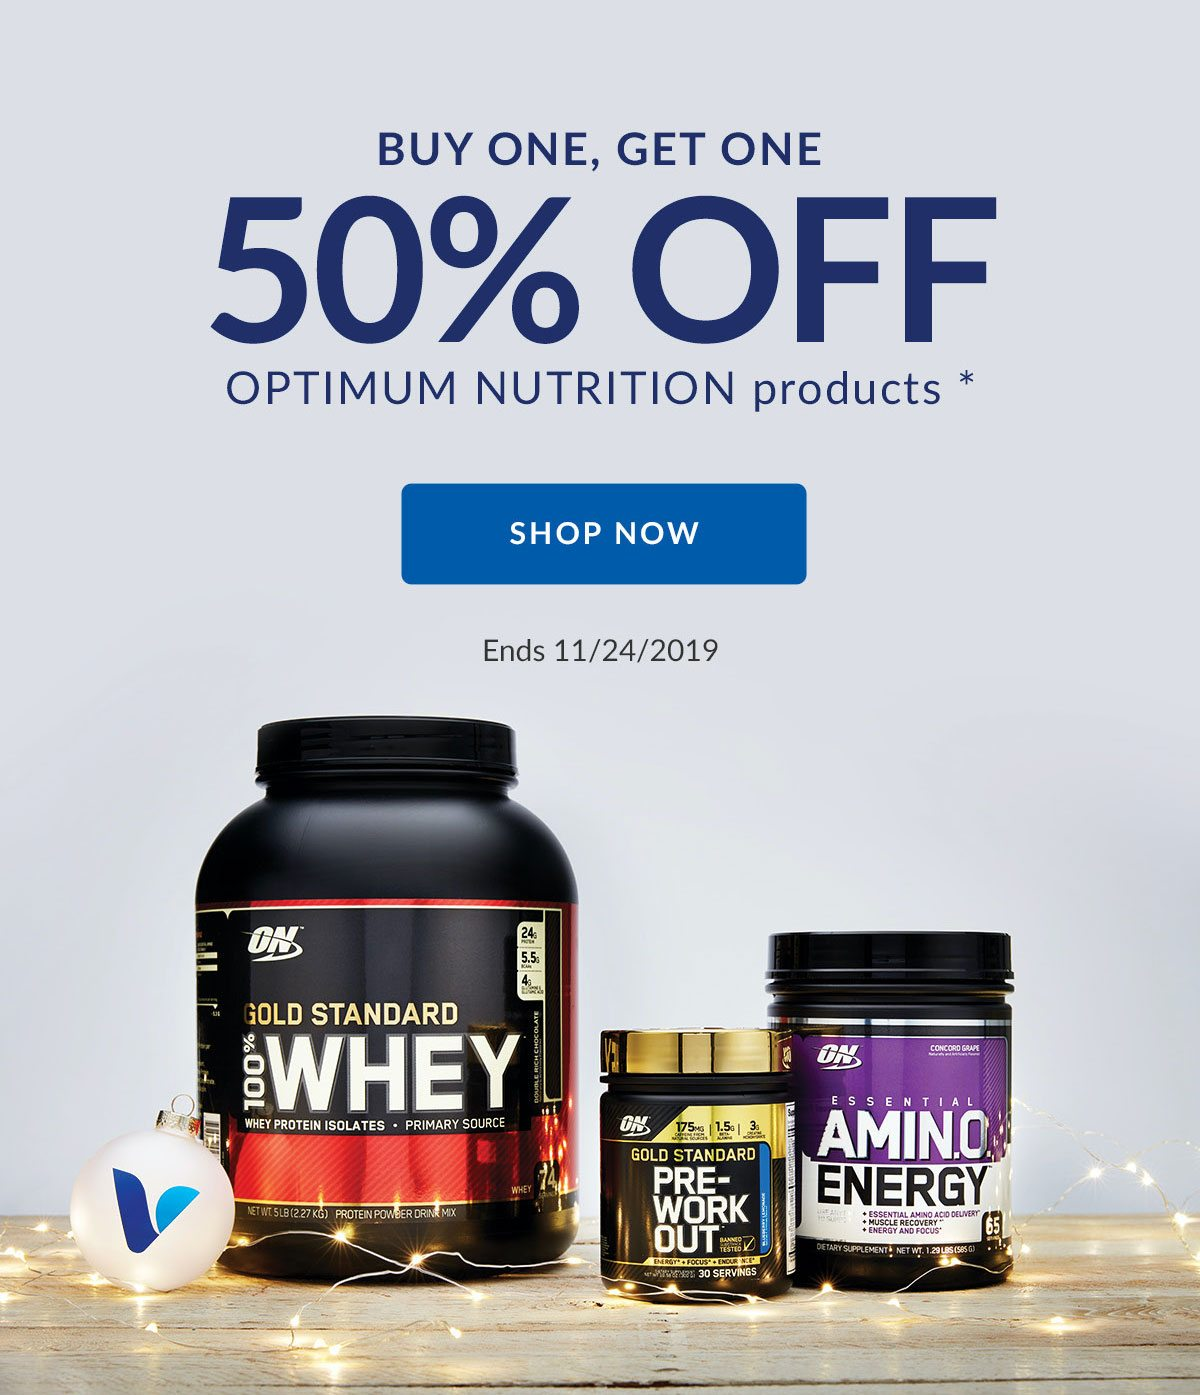 BUY ONE, GET ONE 50% OFF OPTIMUM NUTRITION products * | SHOP NOW | Ends 11/24/2019